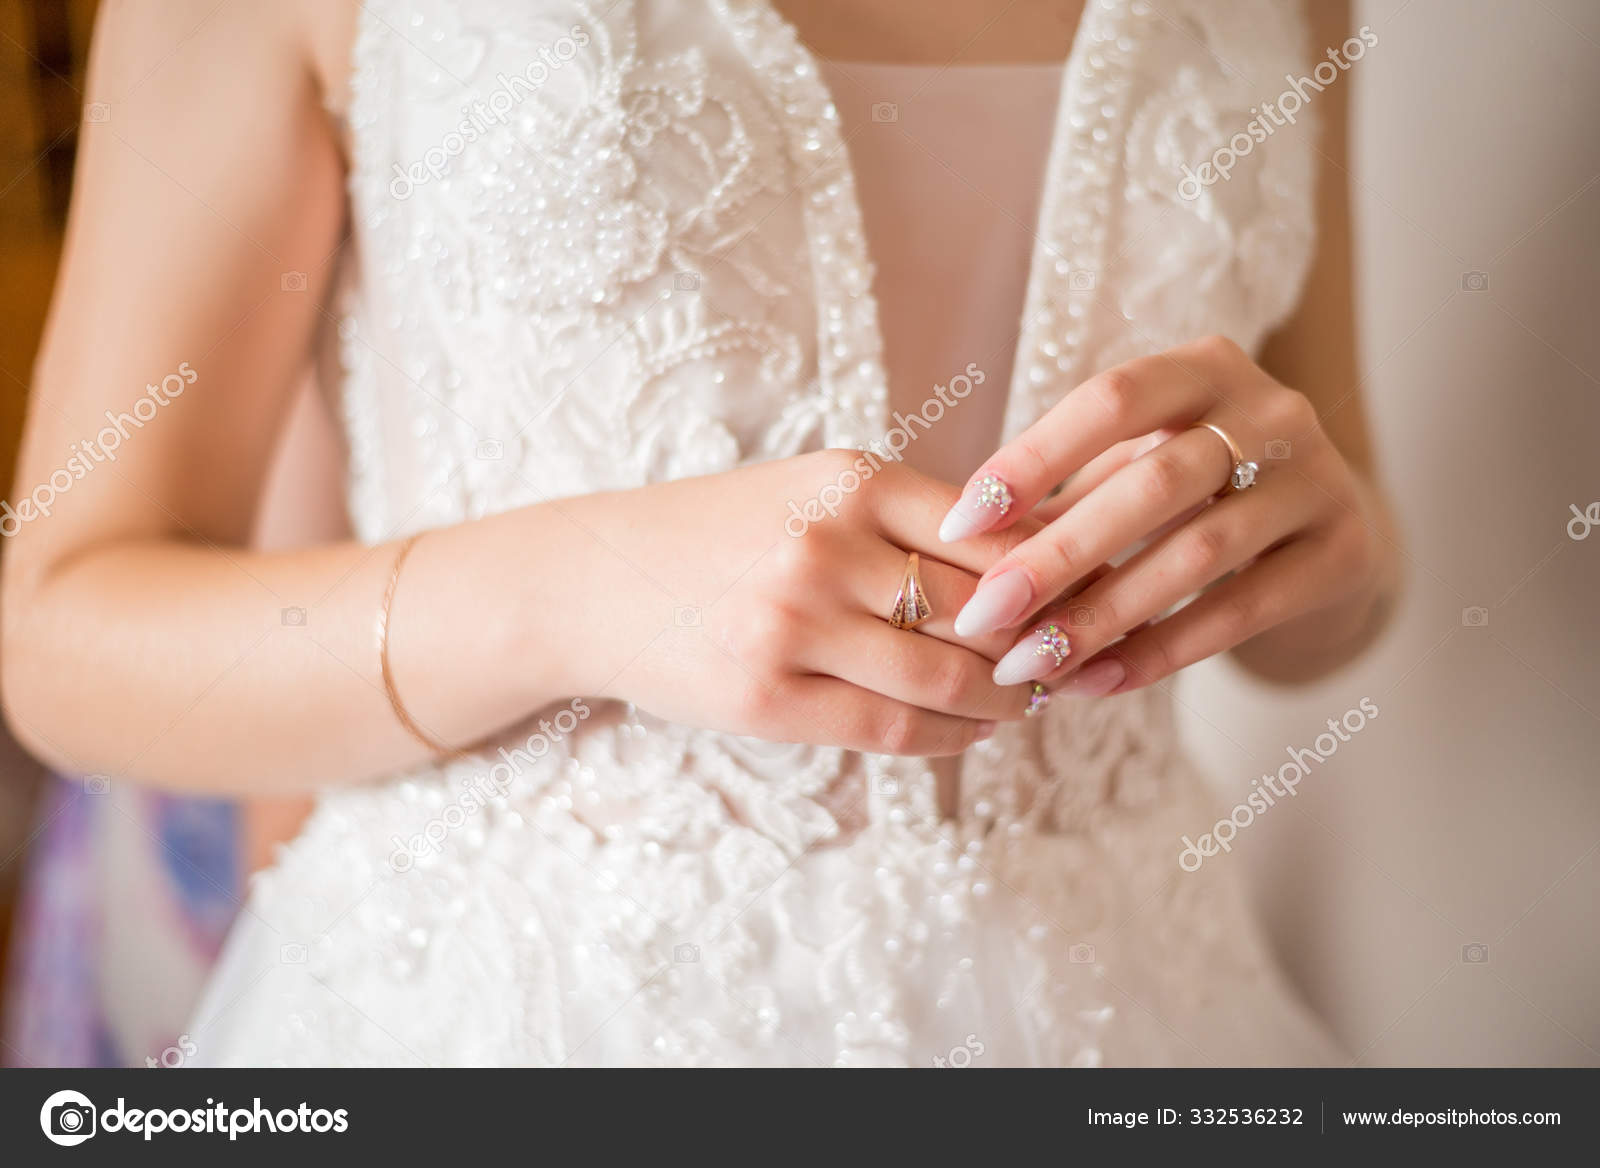 The Hands Of The Bride With Gold Wedding Ring With A Diamond Br